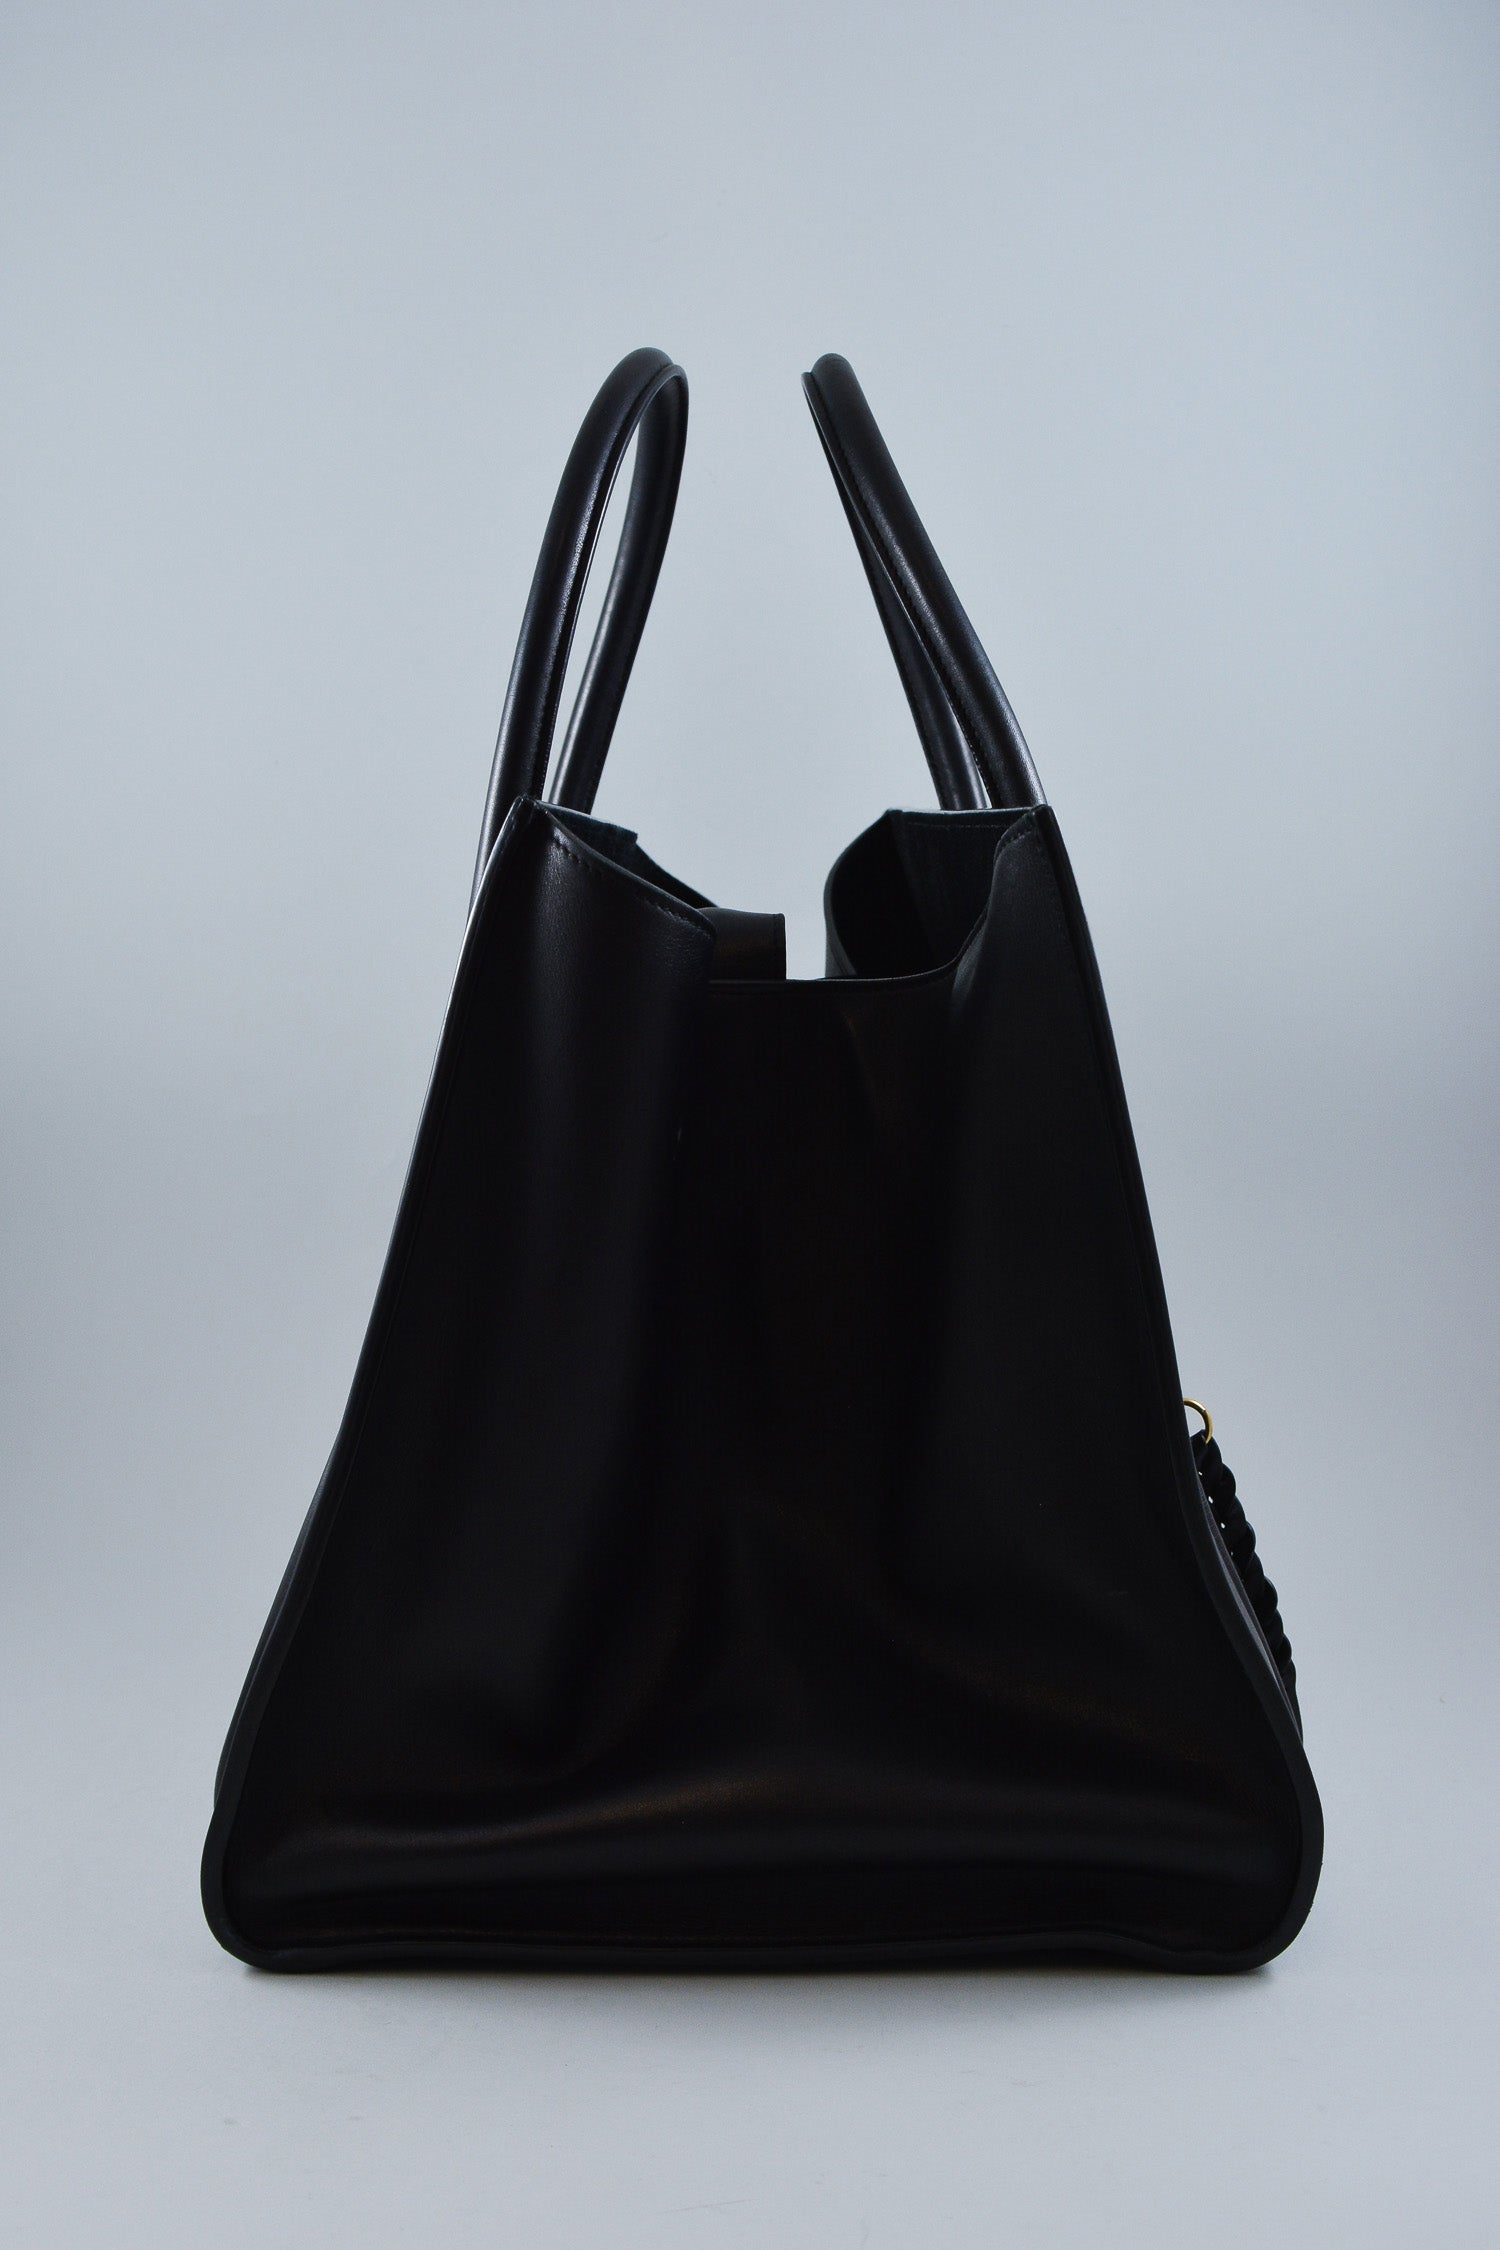 Celine Black Leather Phantom Luggage Bag